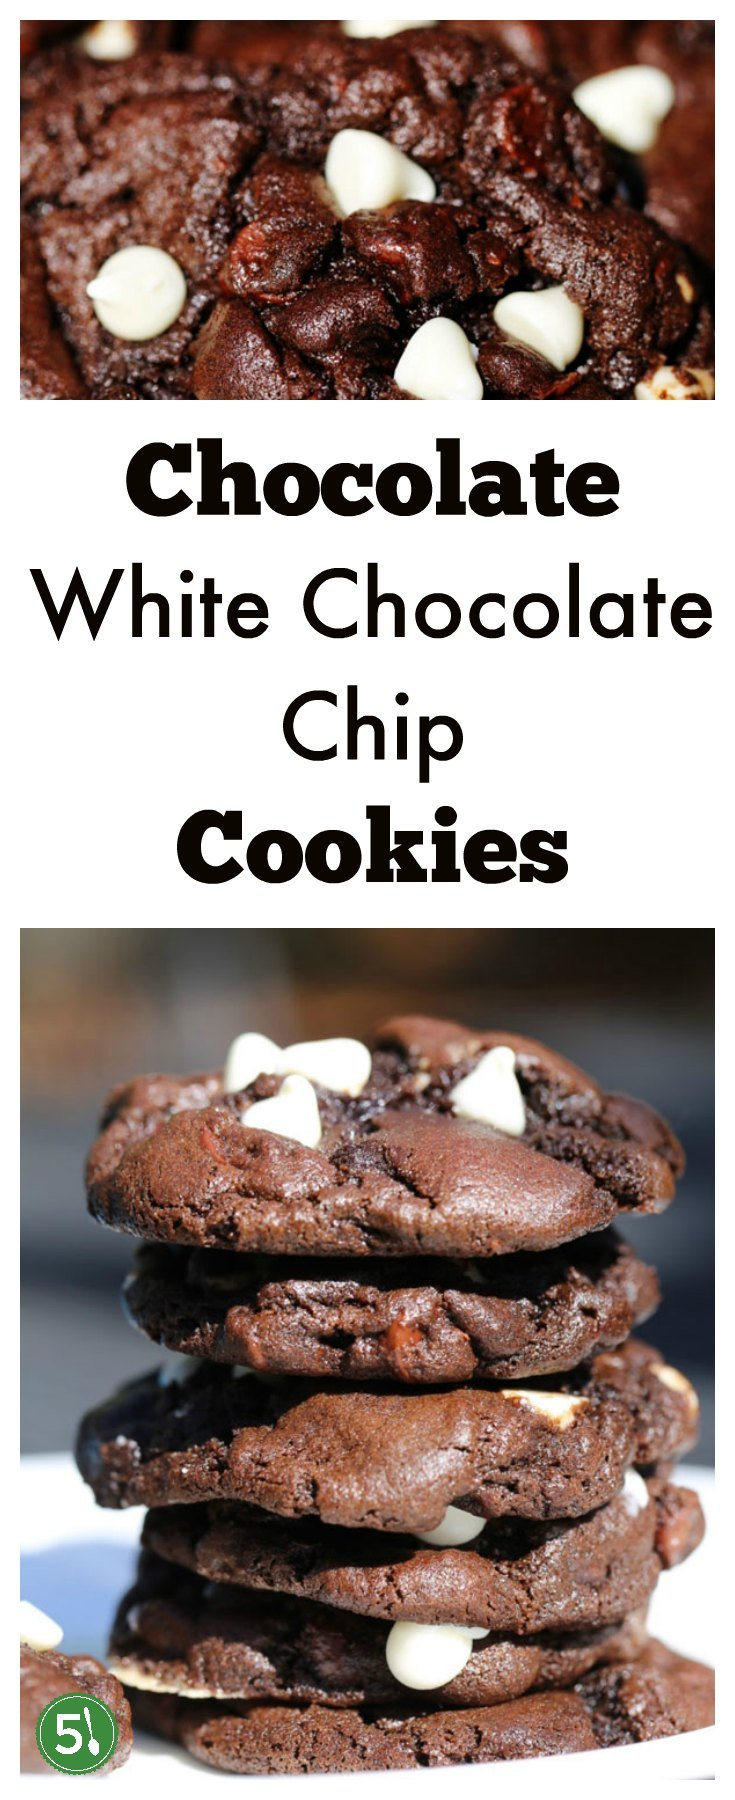 Soft chocolate white chocolate chip cookies recipe with nestle semi sweet and white chocolate chips. This is a heavenly fudgey brownie like cookie that is now one of my favorite desserts!